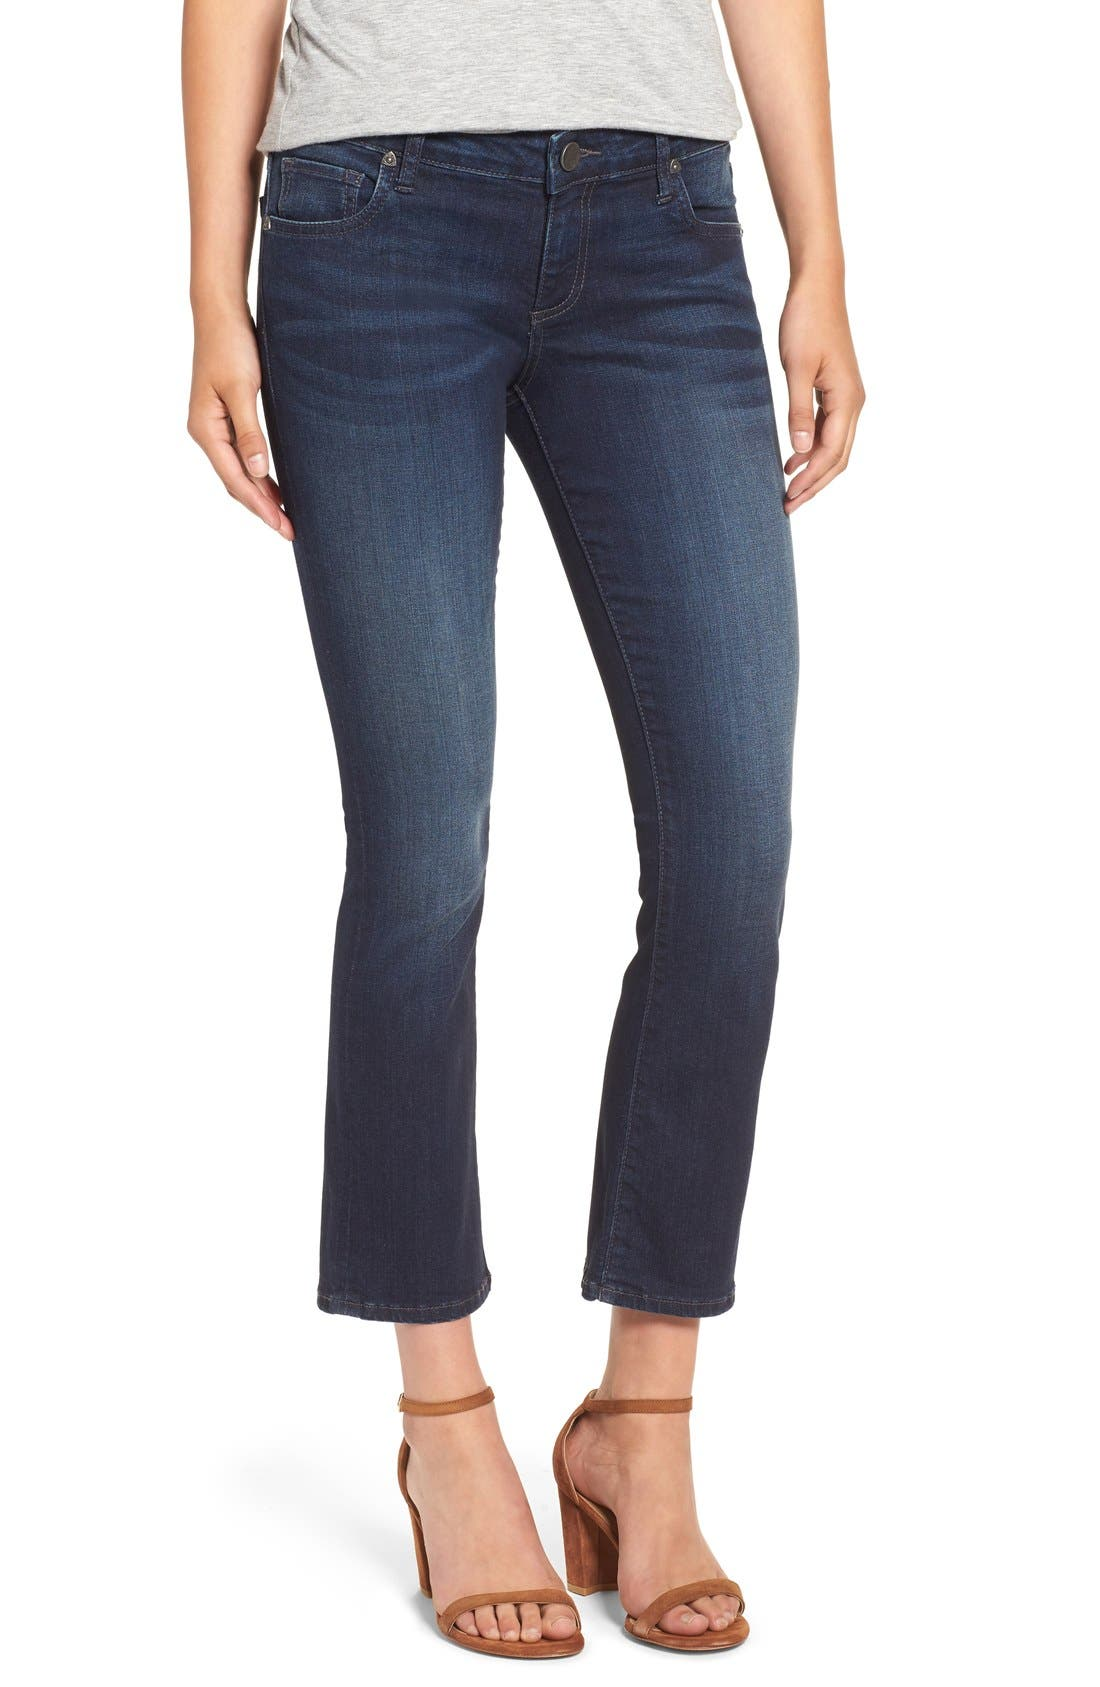 Main Image - KUT from the Kloth 'Reese' Crop Flare Leg Jeans (Security)